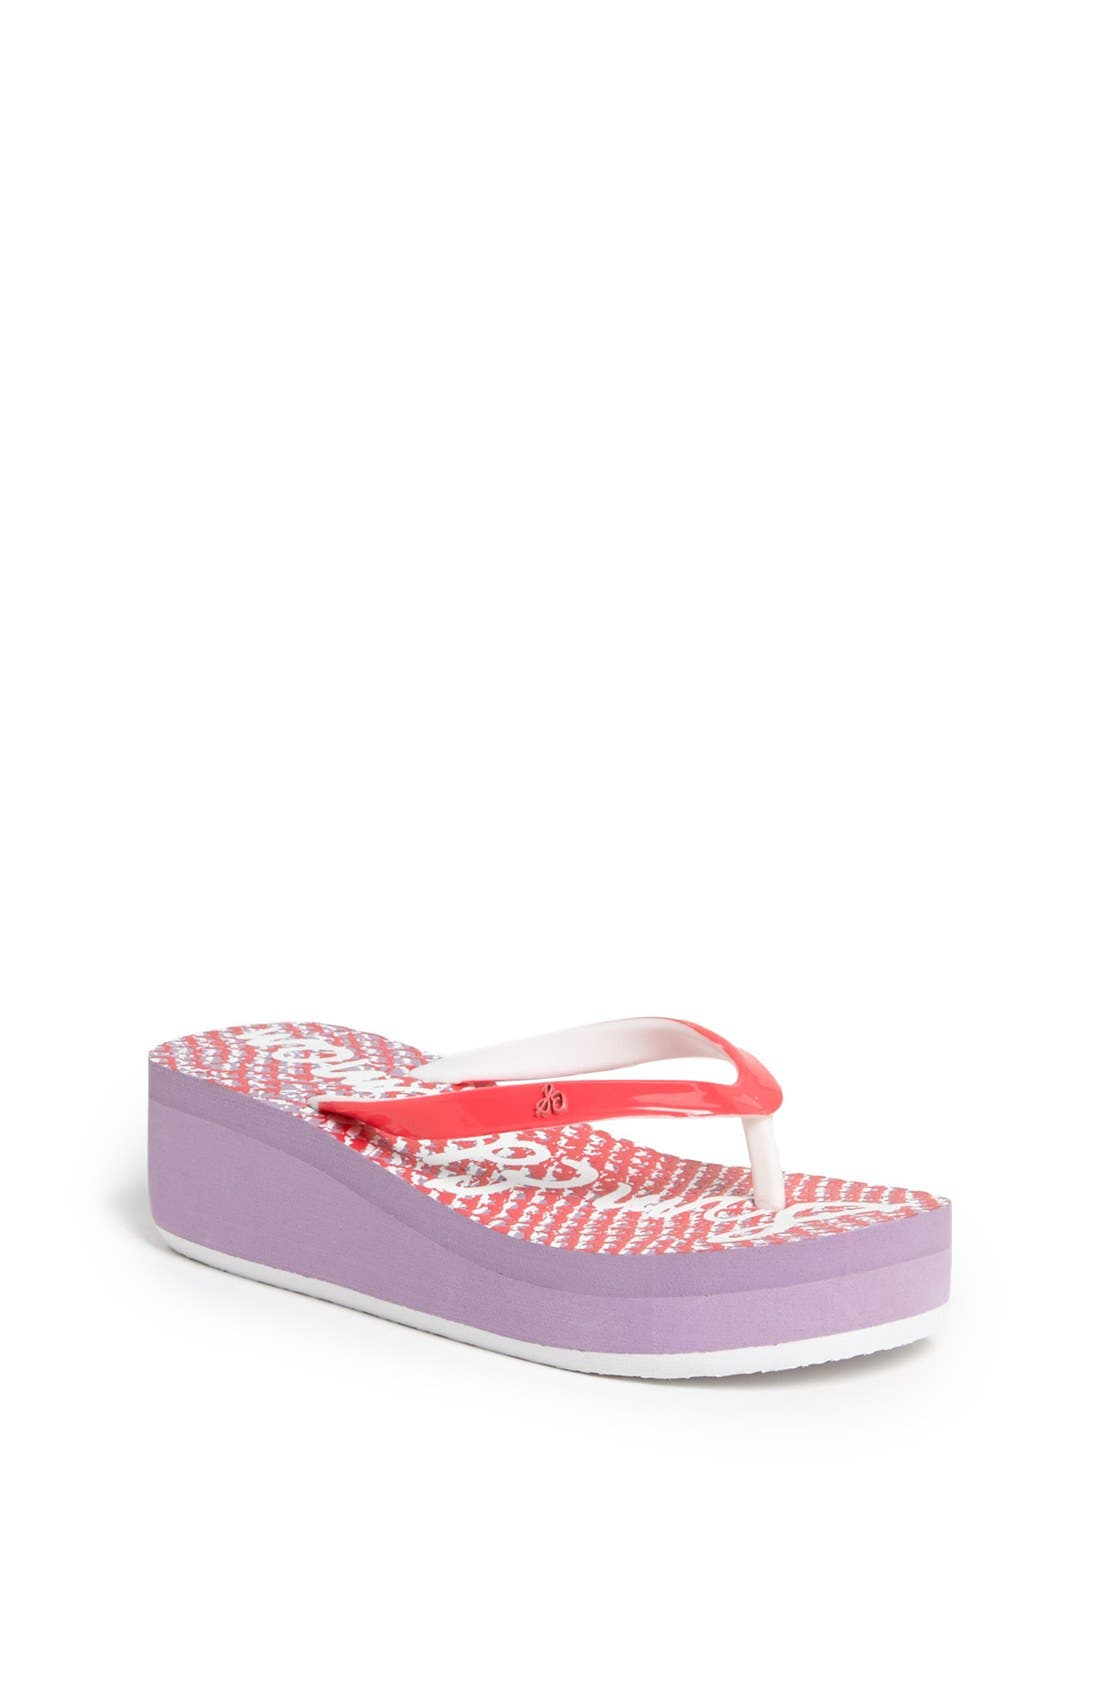 Alternate Image 1 Selected - Sam Edelman 'Maribelle' Flip Flop (Toddler, Little Kid & Big Kid)